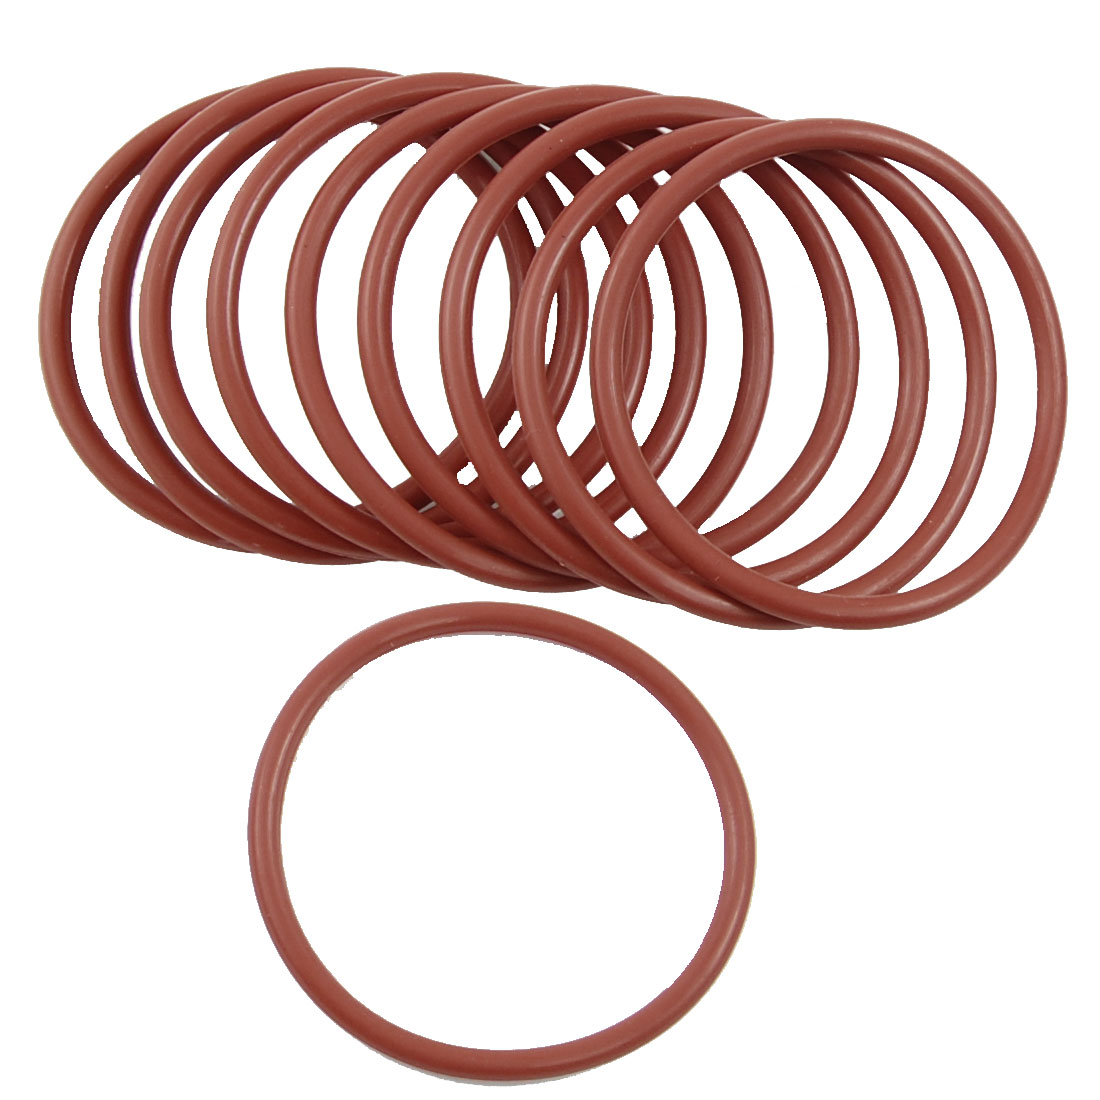 10 Pcs 55mm OD 3.5mm Thickness Red Silicone O Rings Oil Seals Gaskets